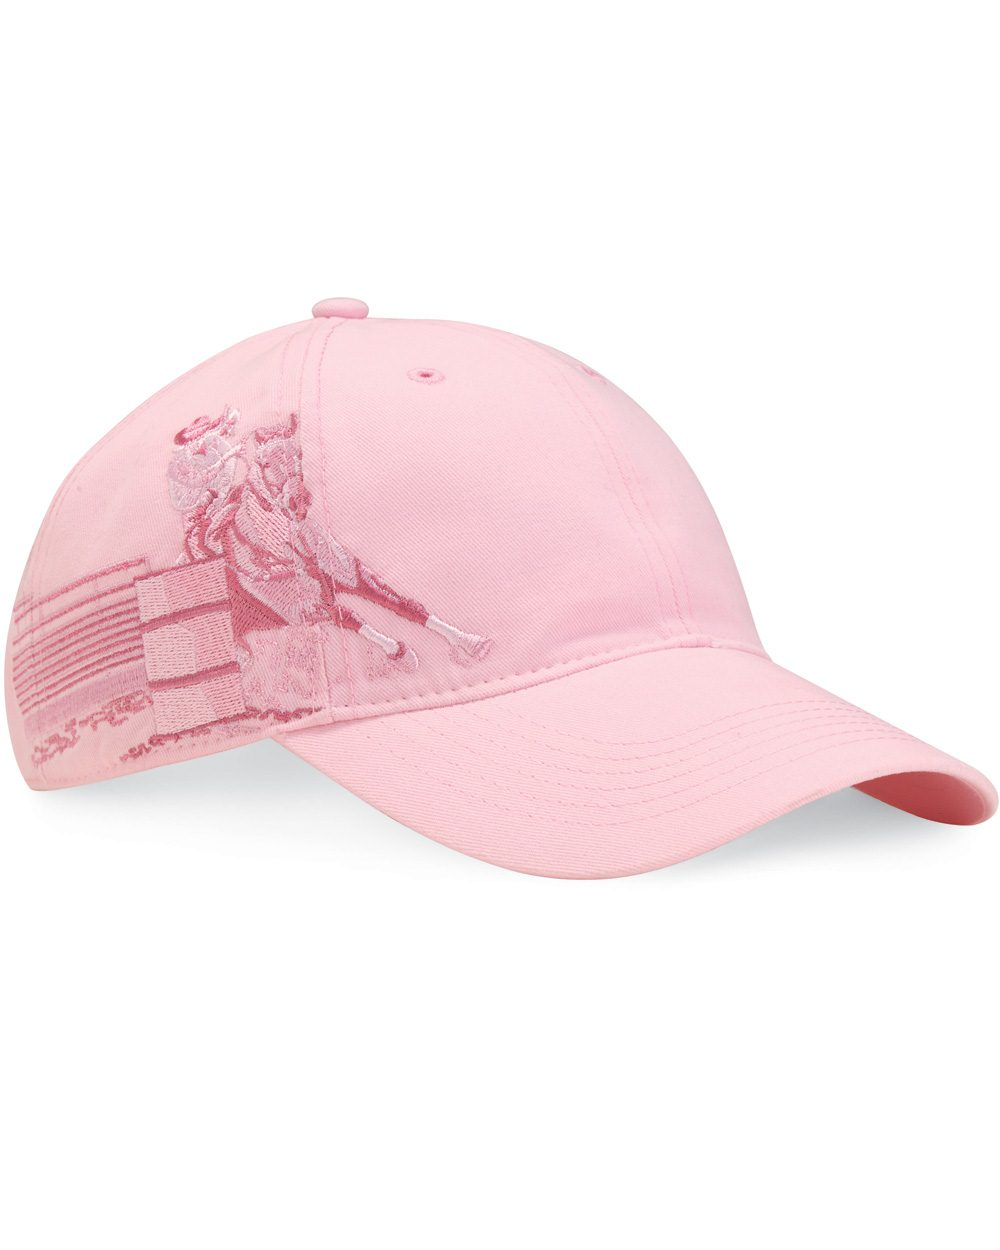 DRI DUCK Ladies' Barrel Racing Cap - 3266